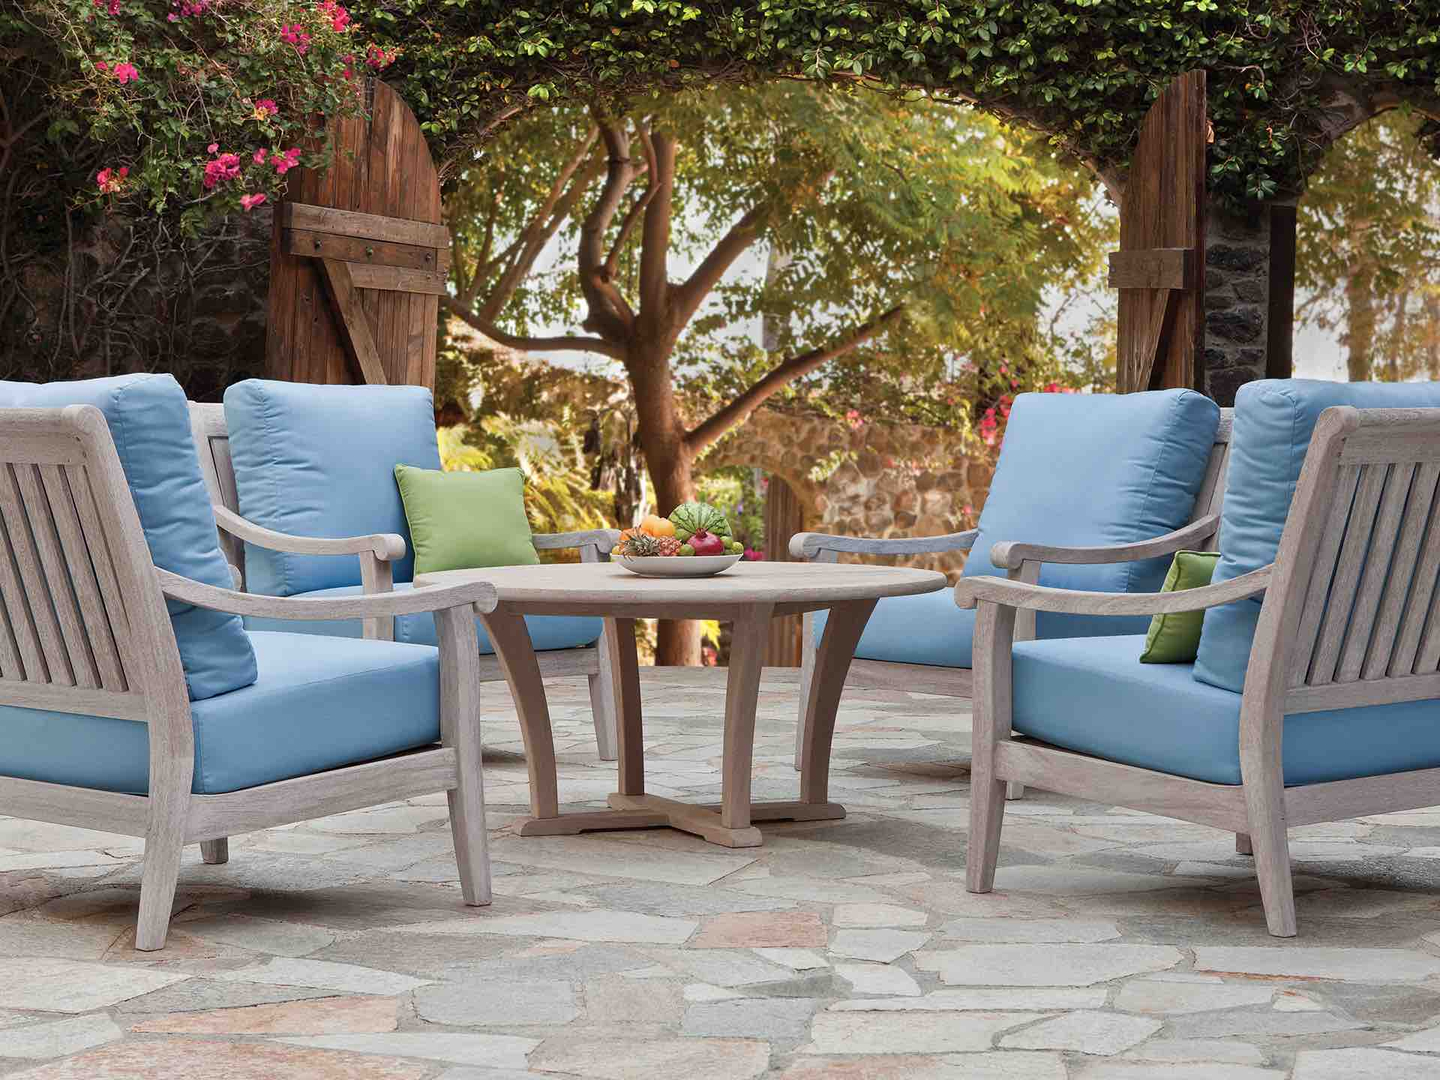 Kospia Farms Jensen Leisure Wood Furniture Products - Ipe outdoor furniture